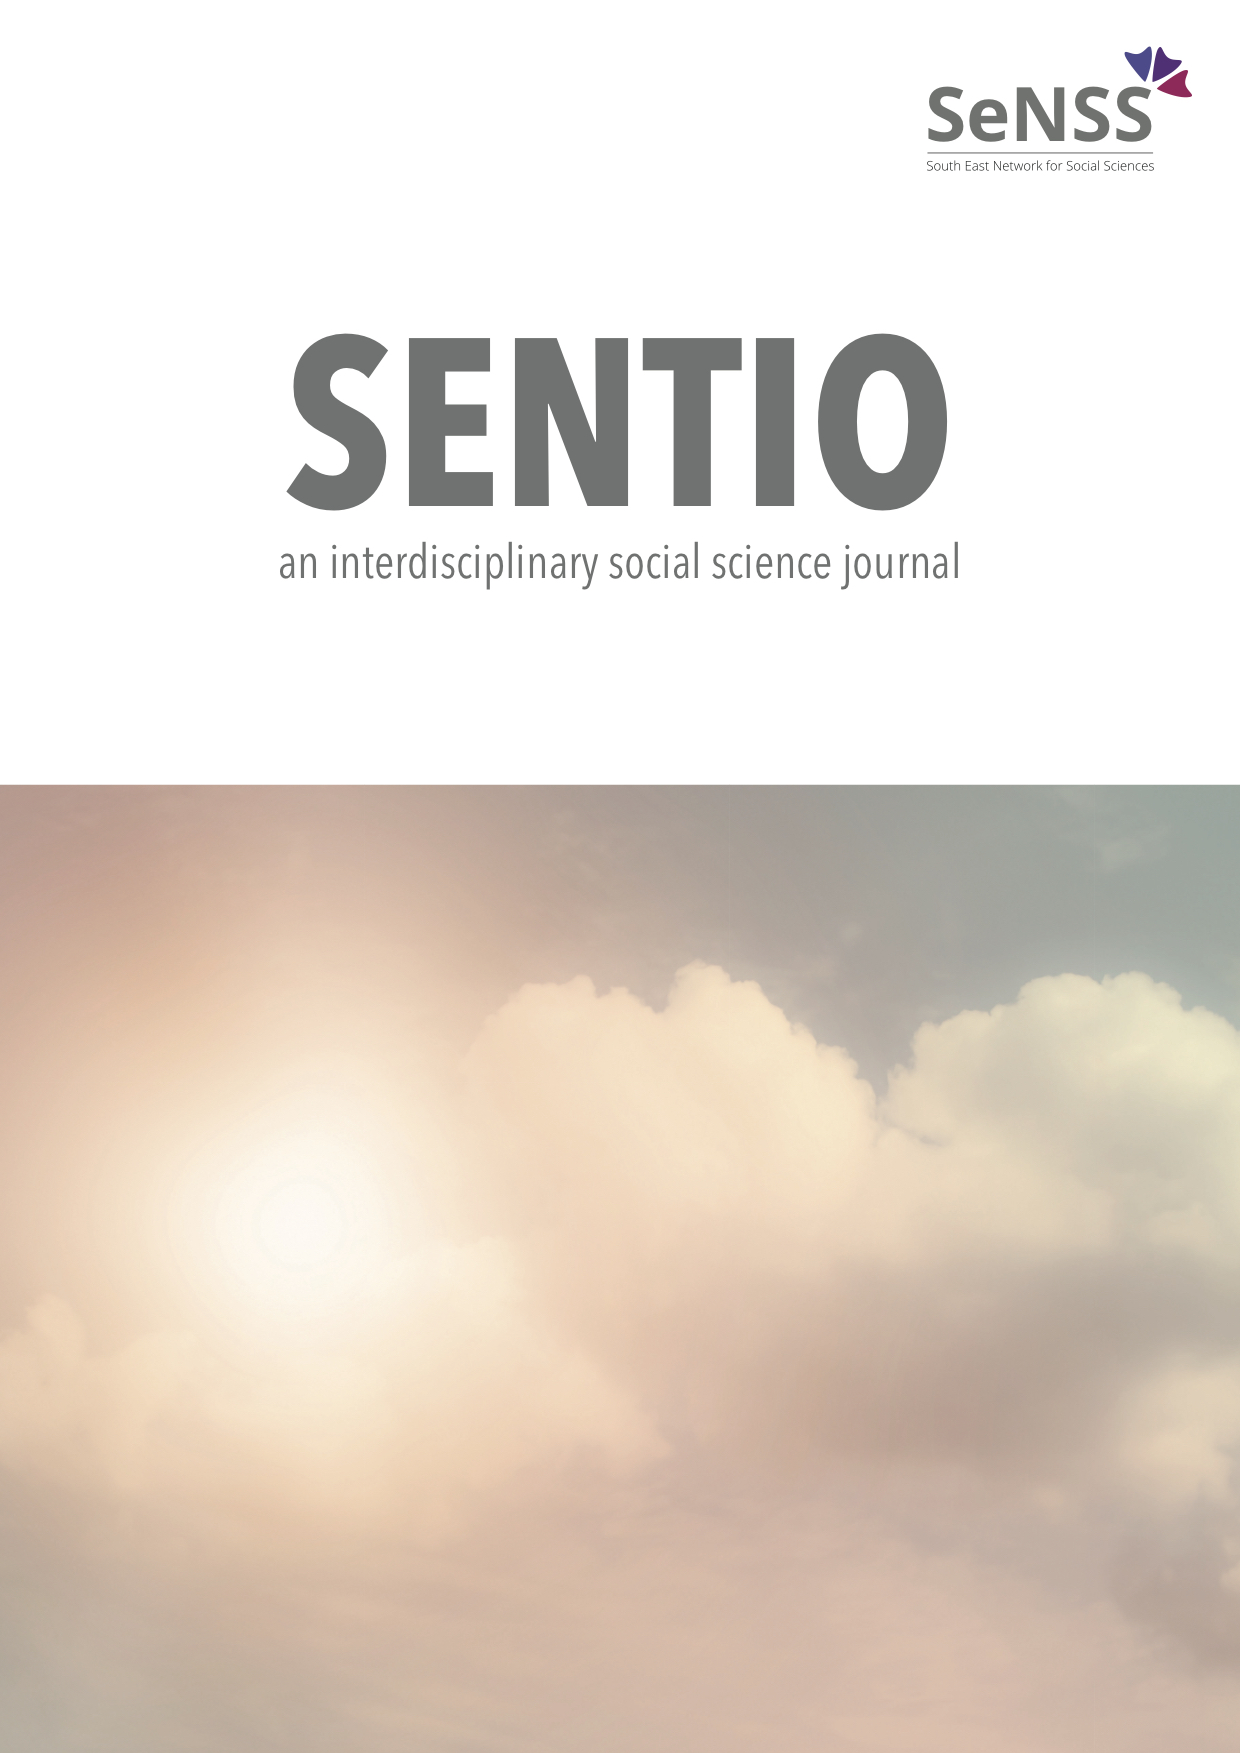 http://sentiojournal.uk/wp-content/uploads/2019/09/56793_sentio_journal_final.pdf